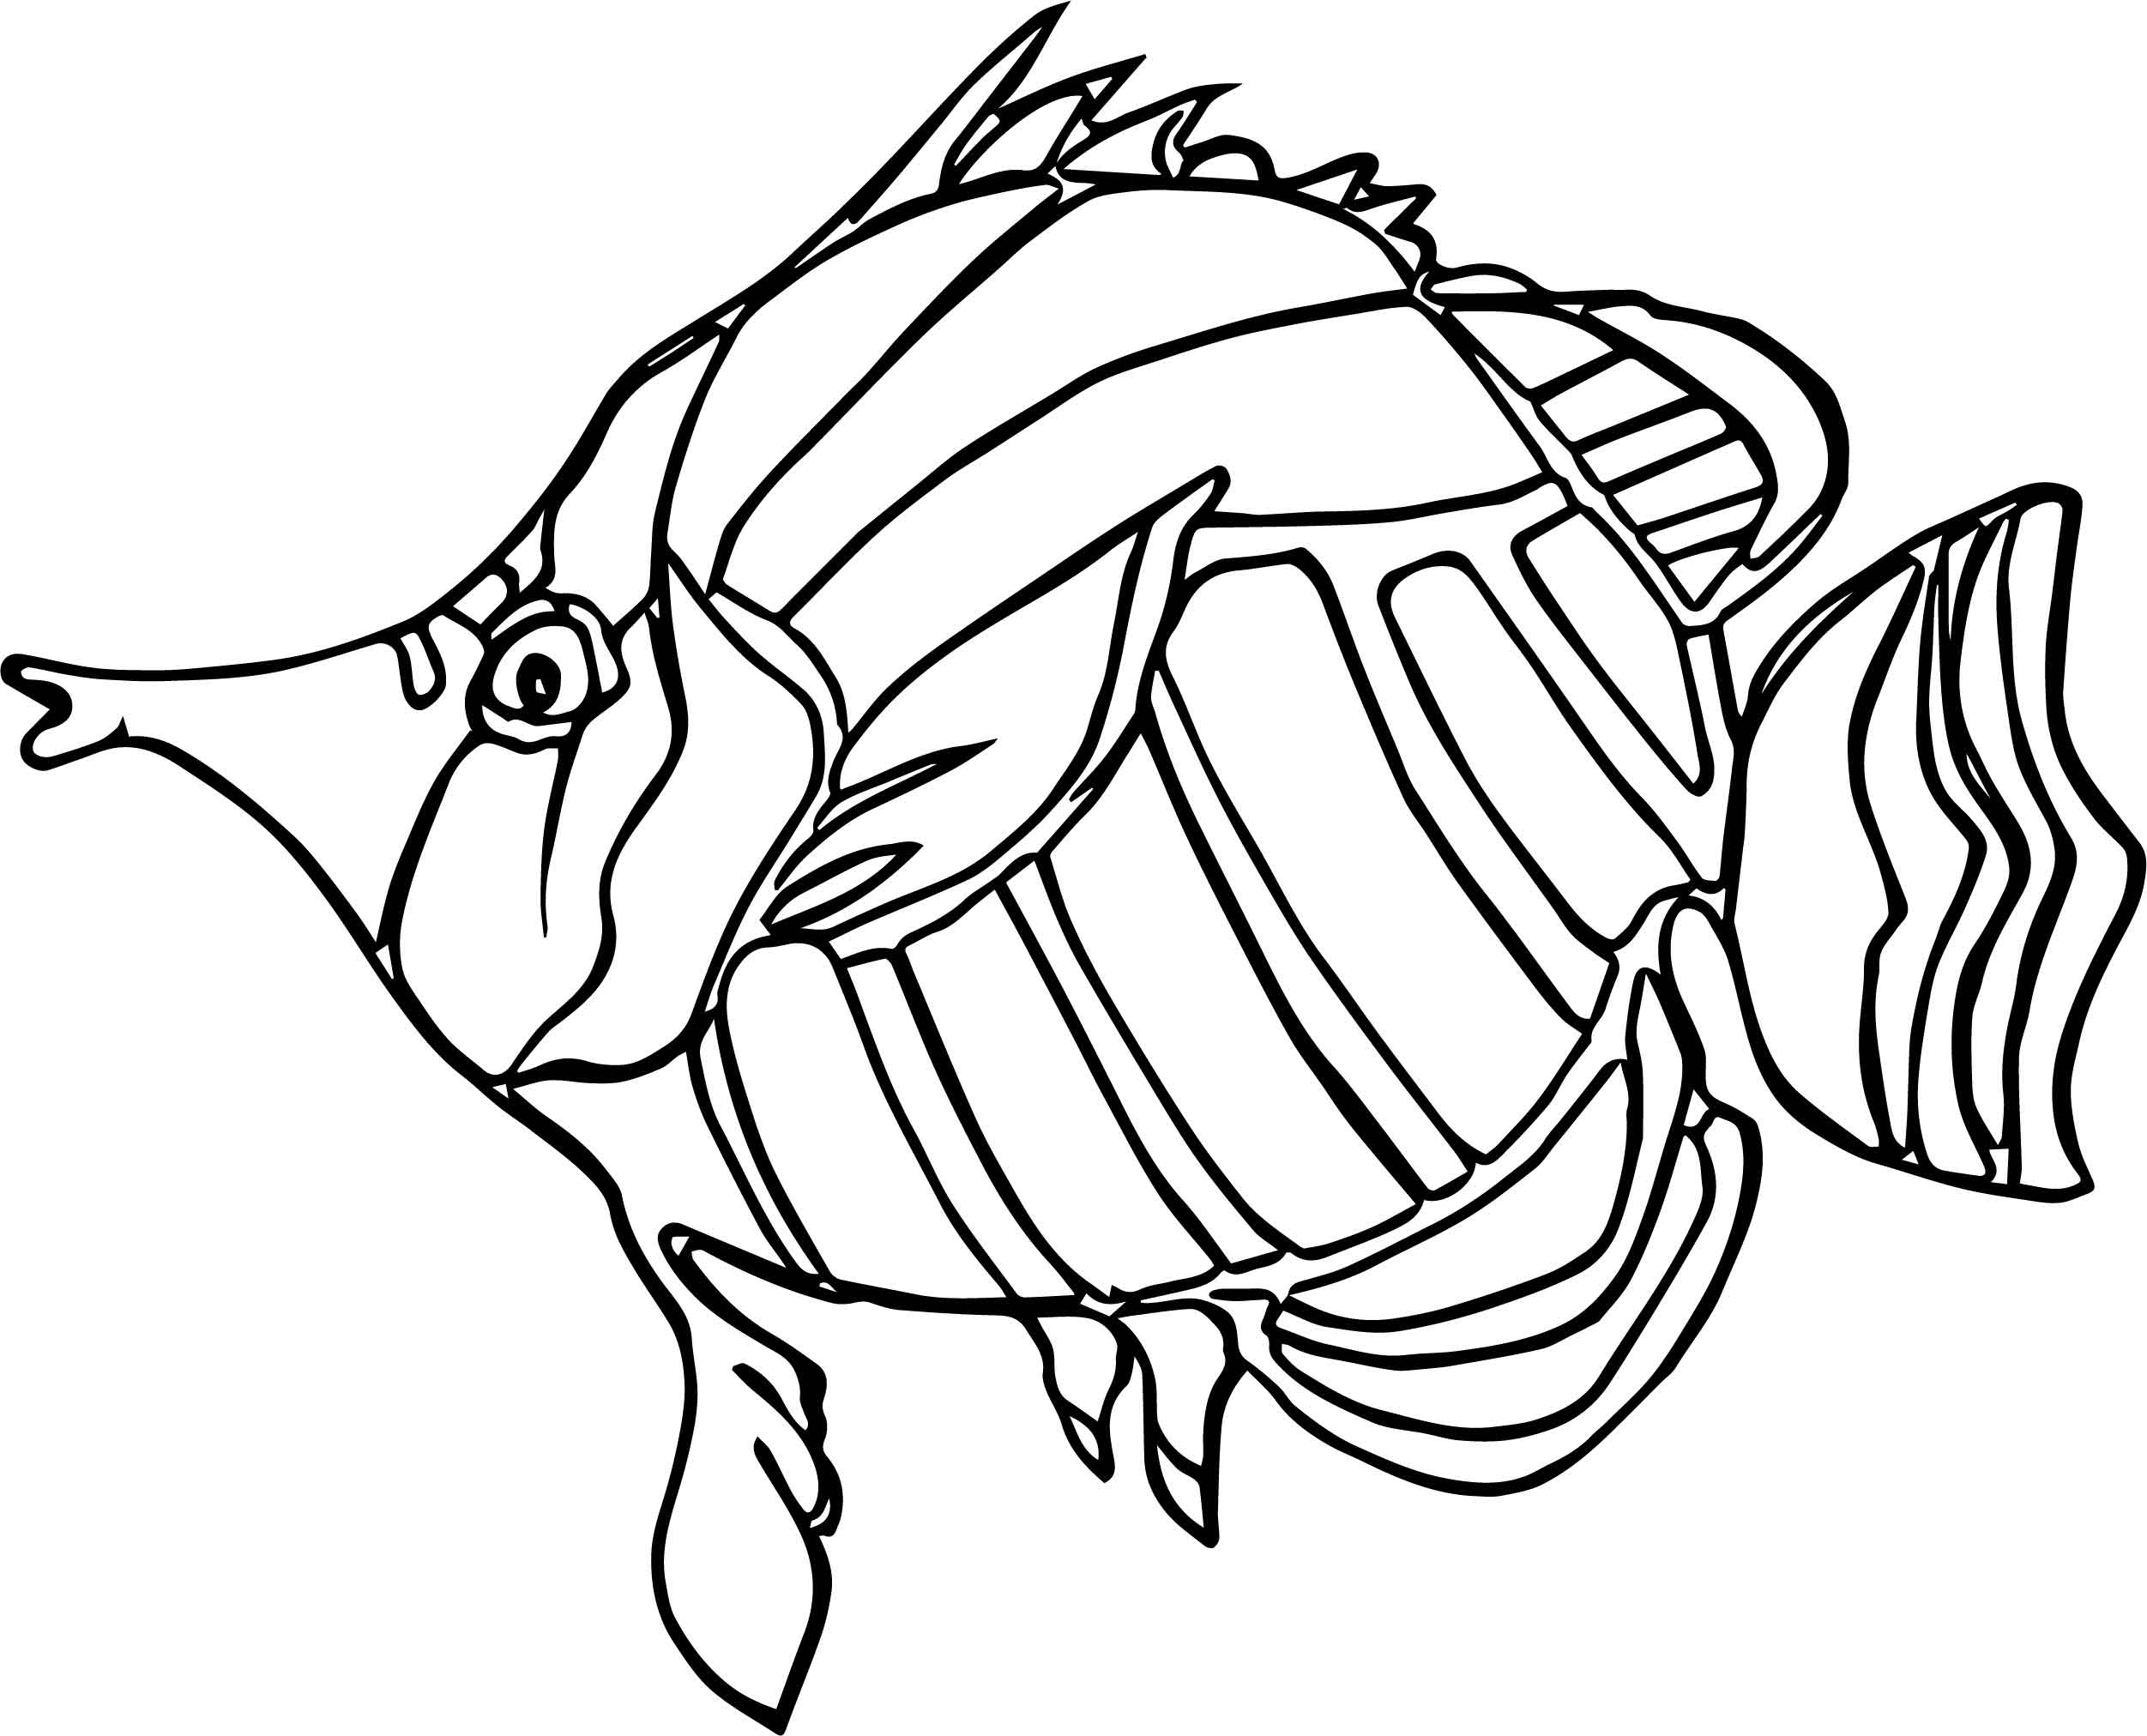 Ancient Angel Fish Coloring Page | Wecoloringpage.com